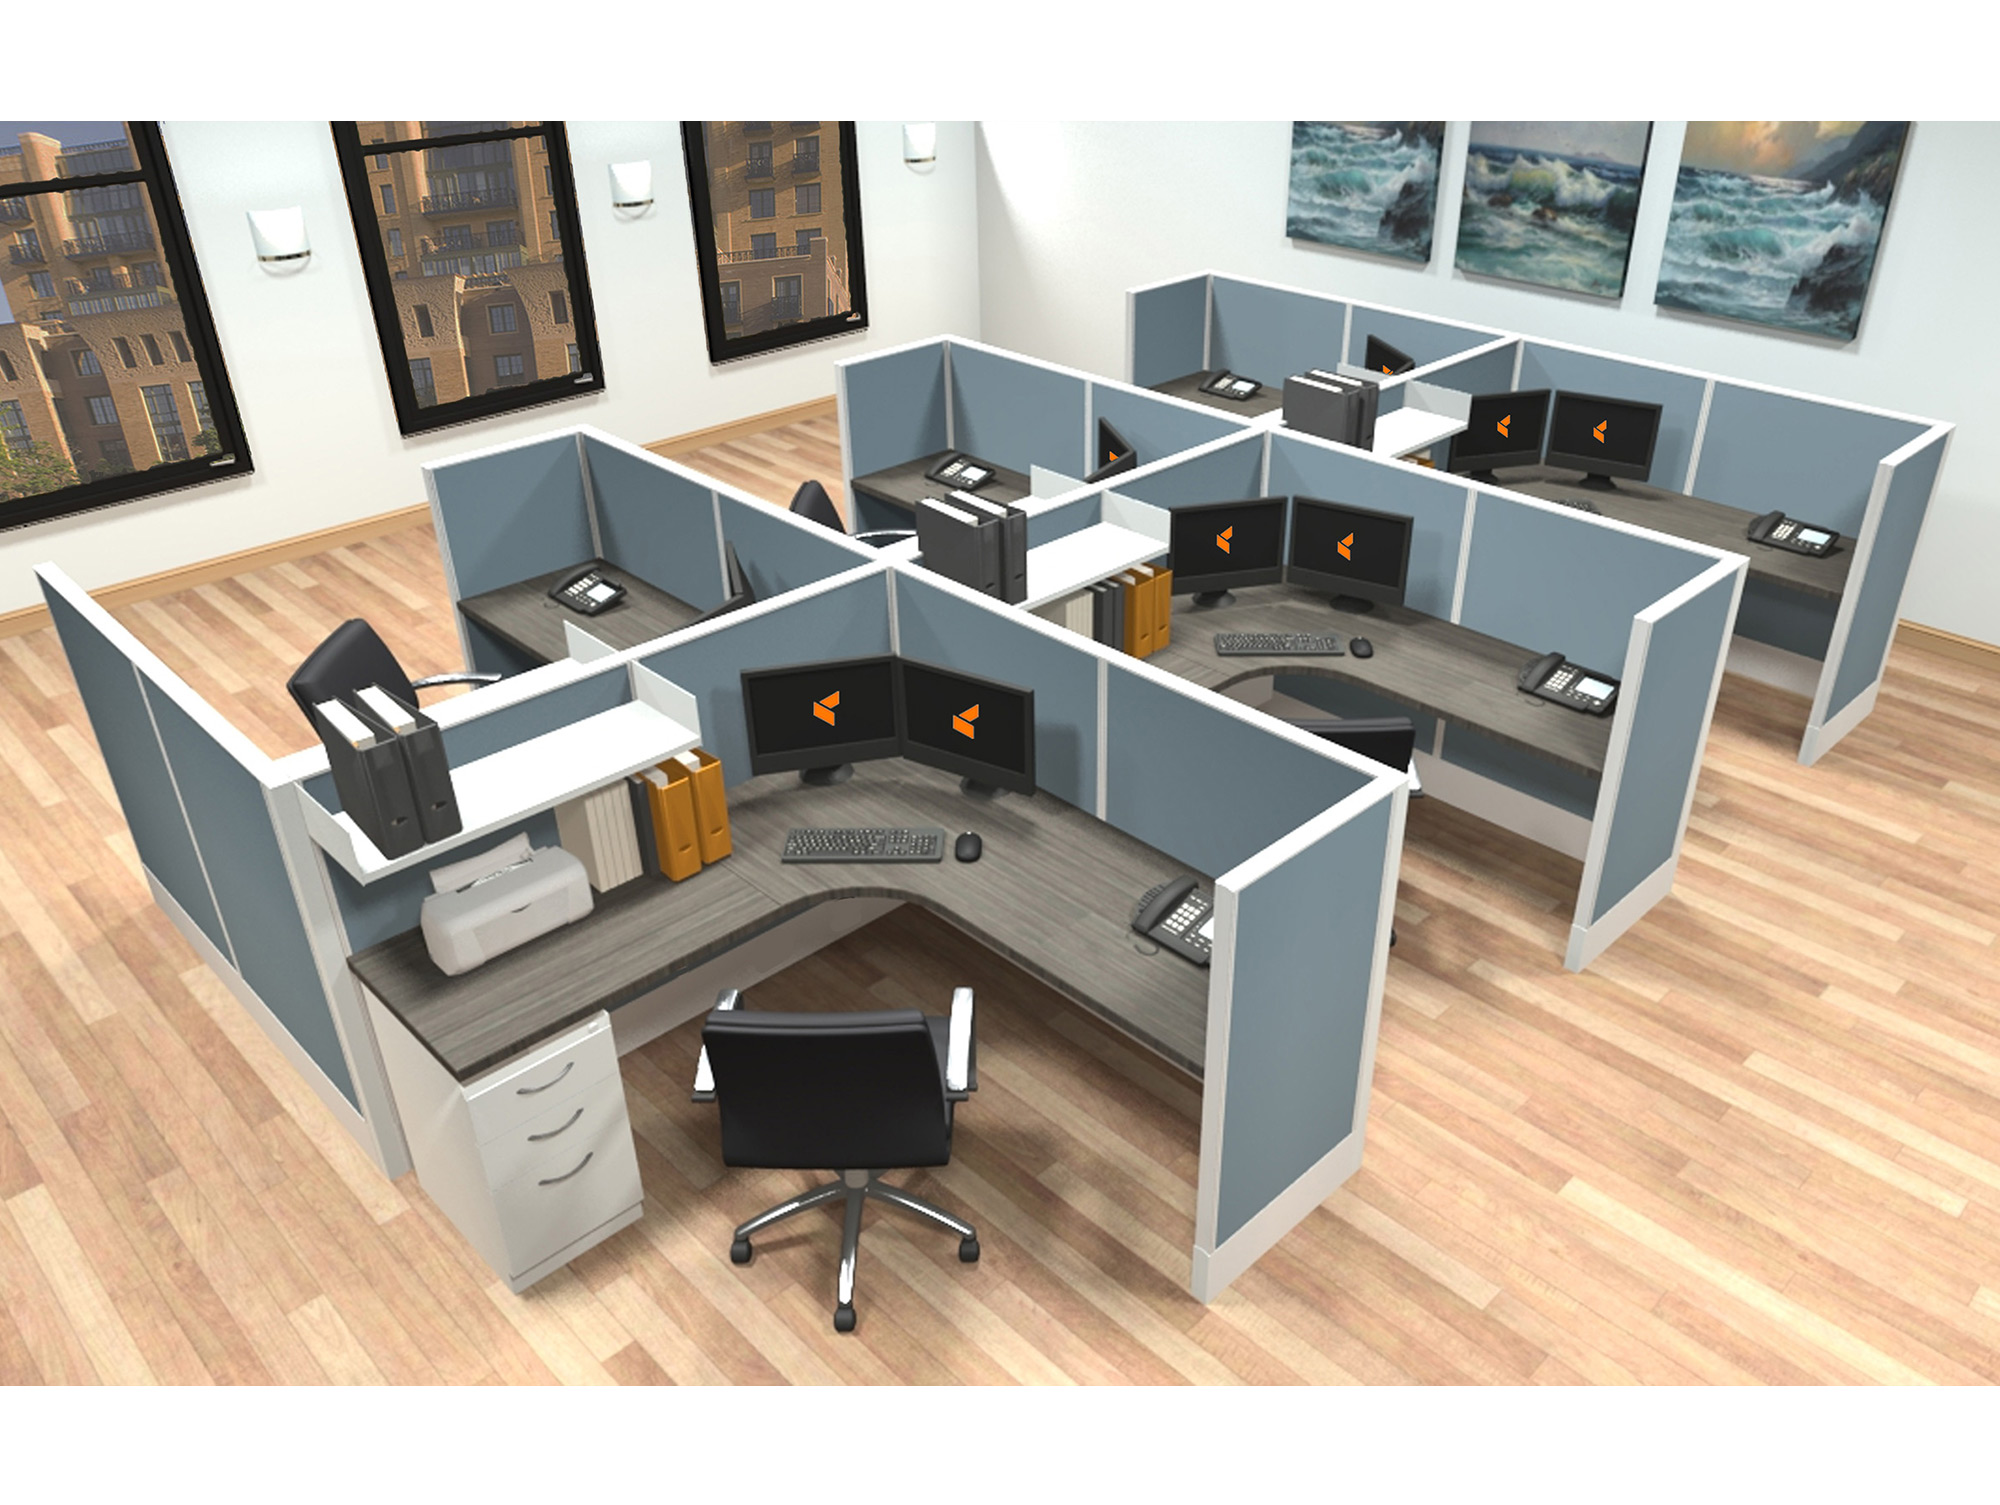 Modular Office Furniture Systems - Modular Workstations -AIS Furniture